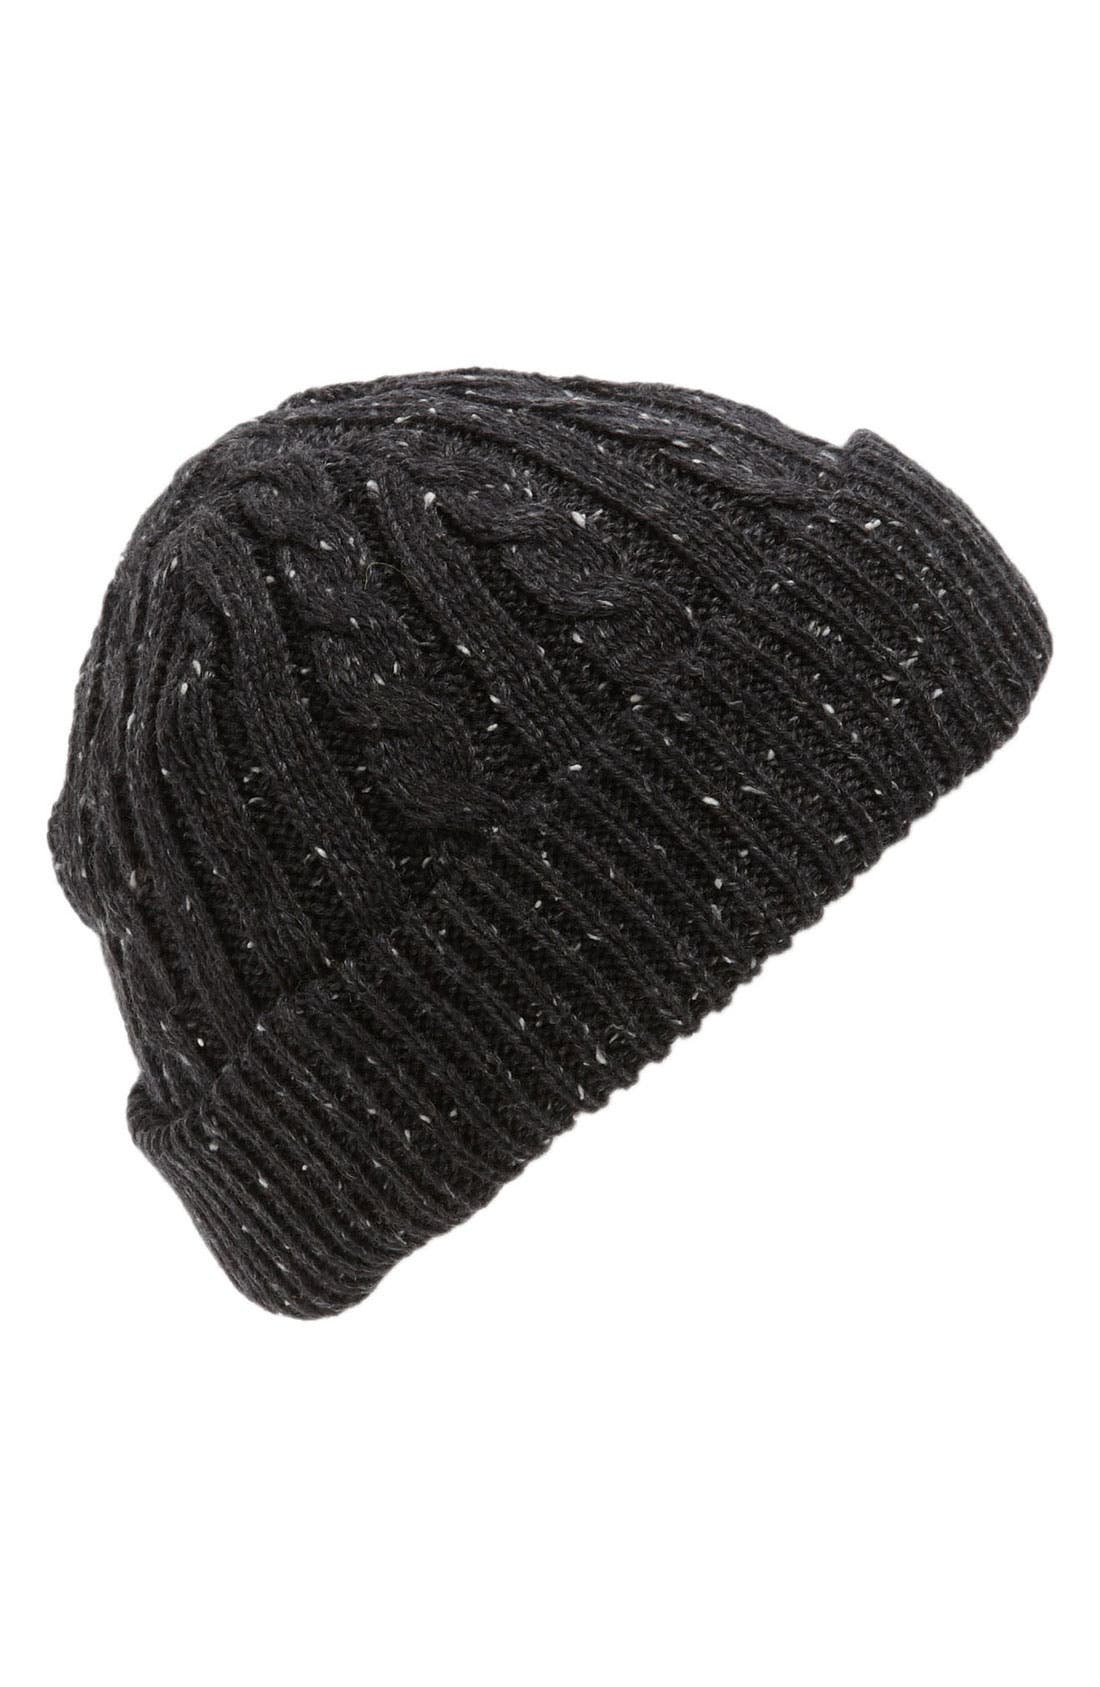 Alternate Image 1 Selected - Topman Acrylic Knit Cap